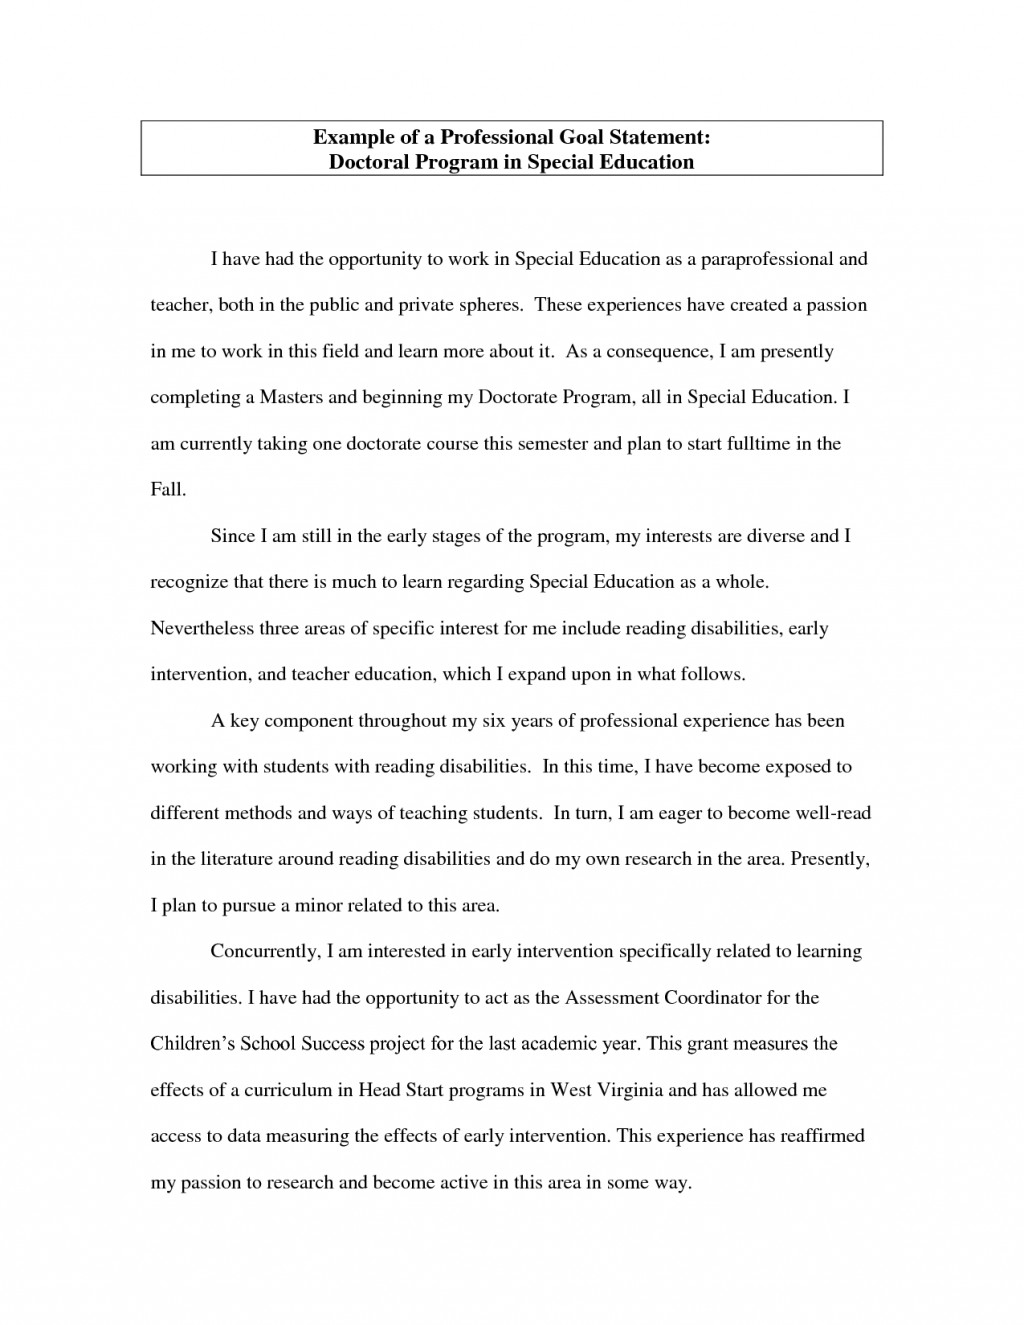 020 Essay Example Career Goal Statement Zdxttkpg About Awesome Goals In High School After Life Large